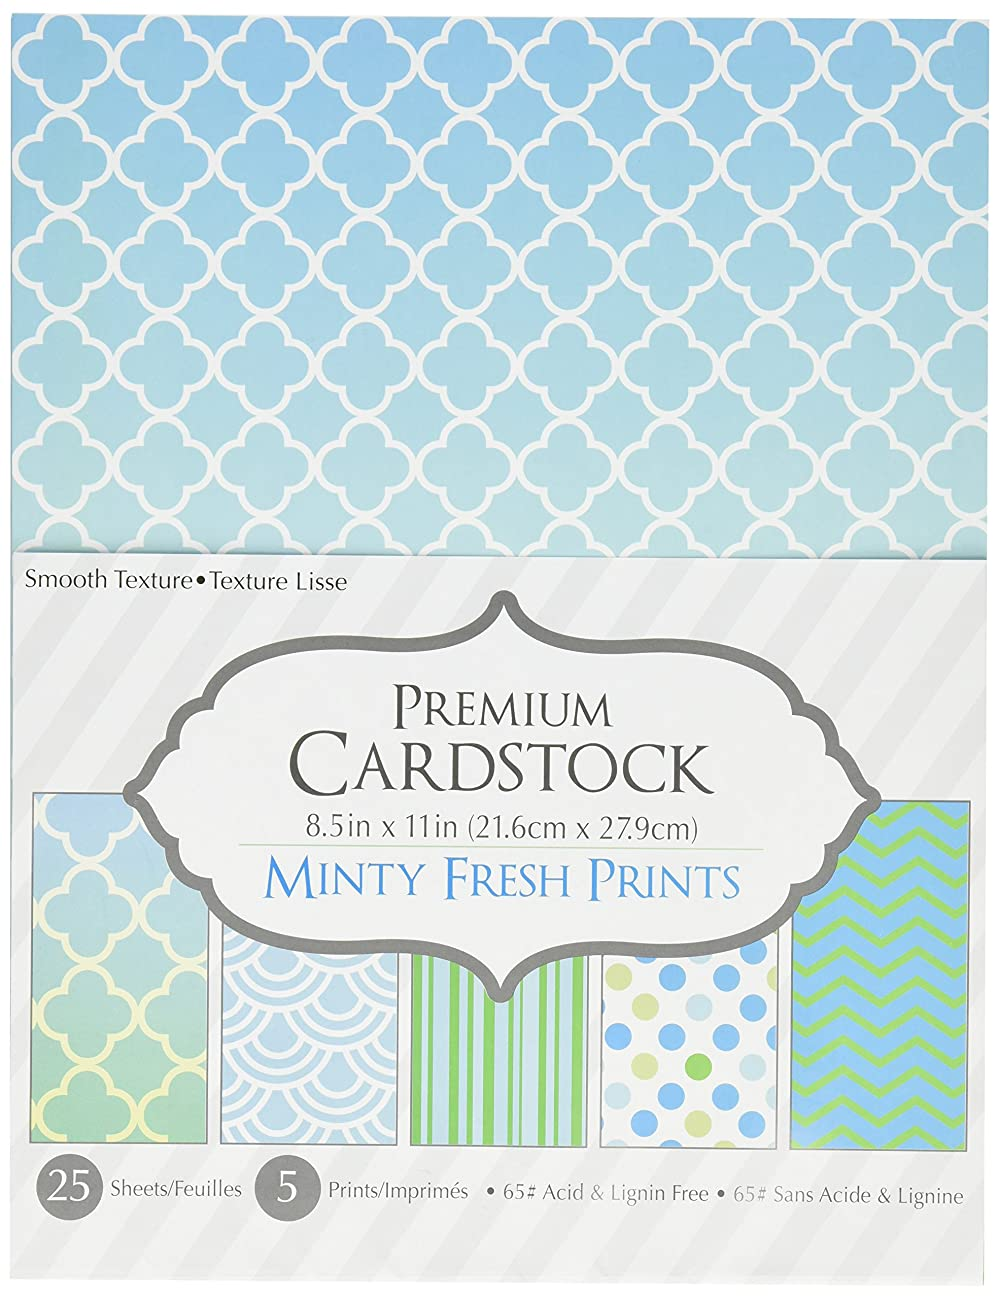 Darice Patterned 8.5 by 11 Cardstock Paper Pack, Minty Fresh Prints, 8.5